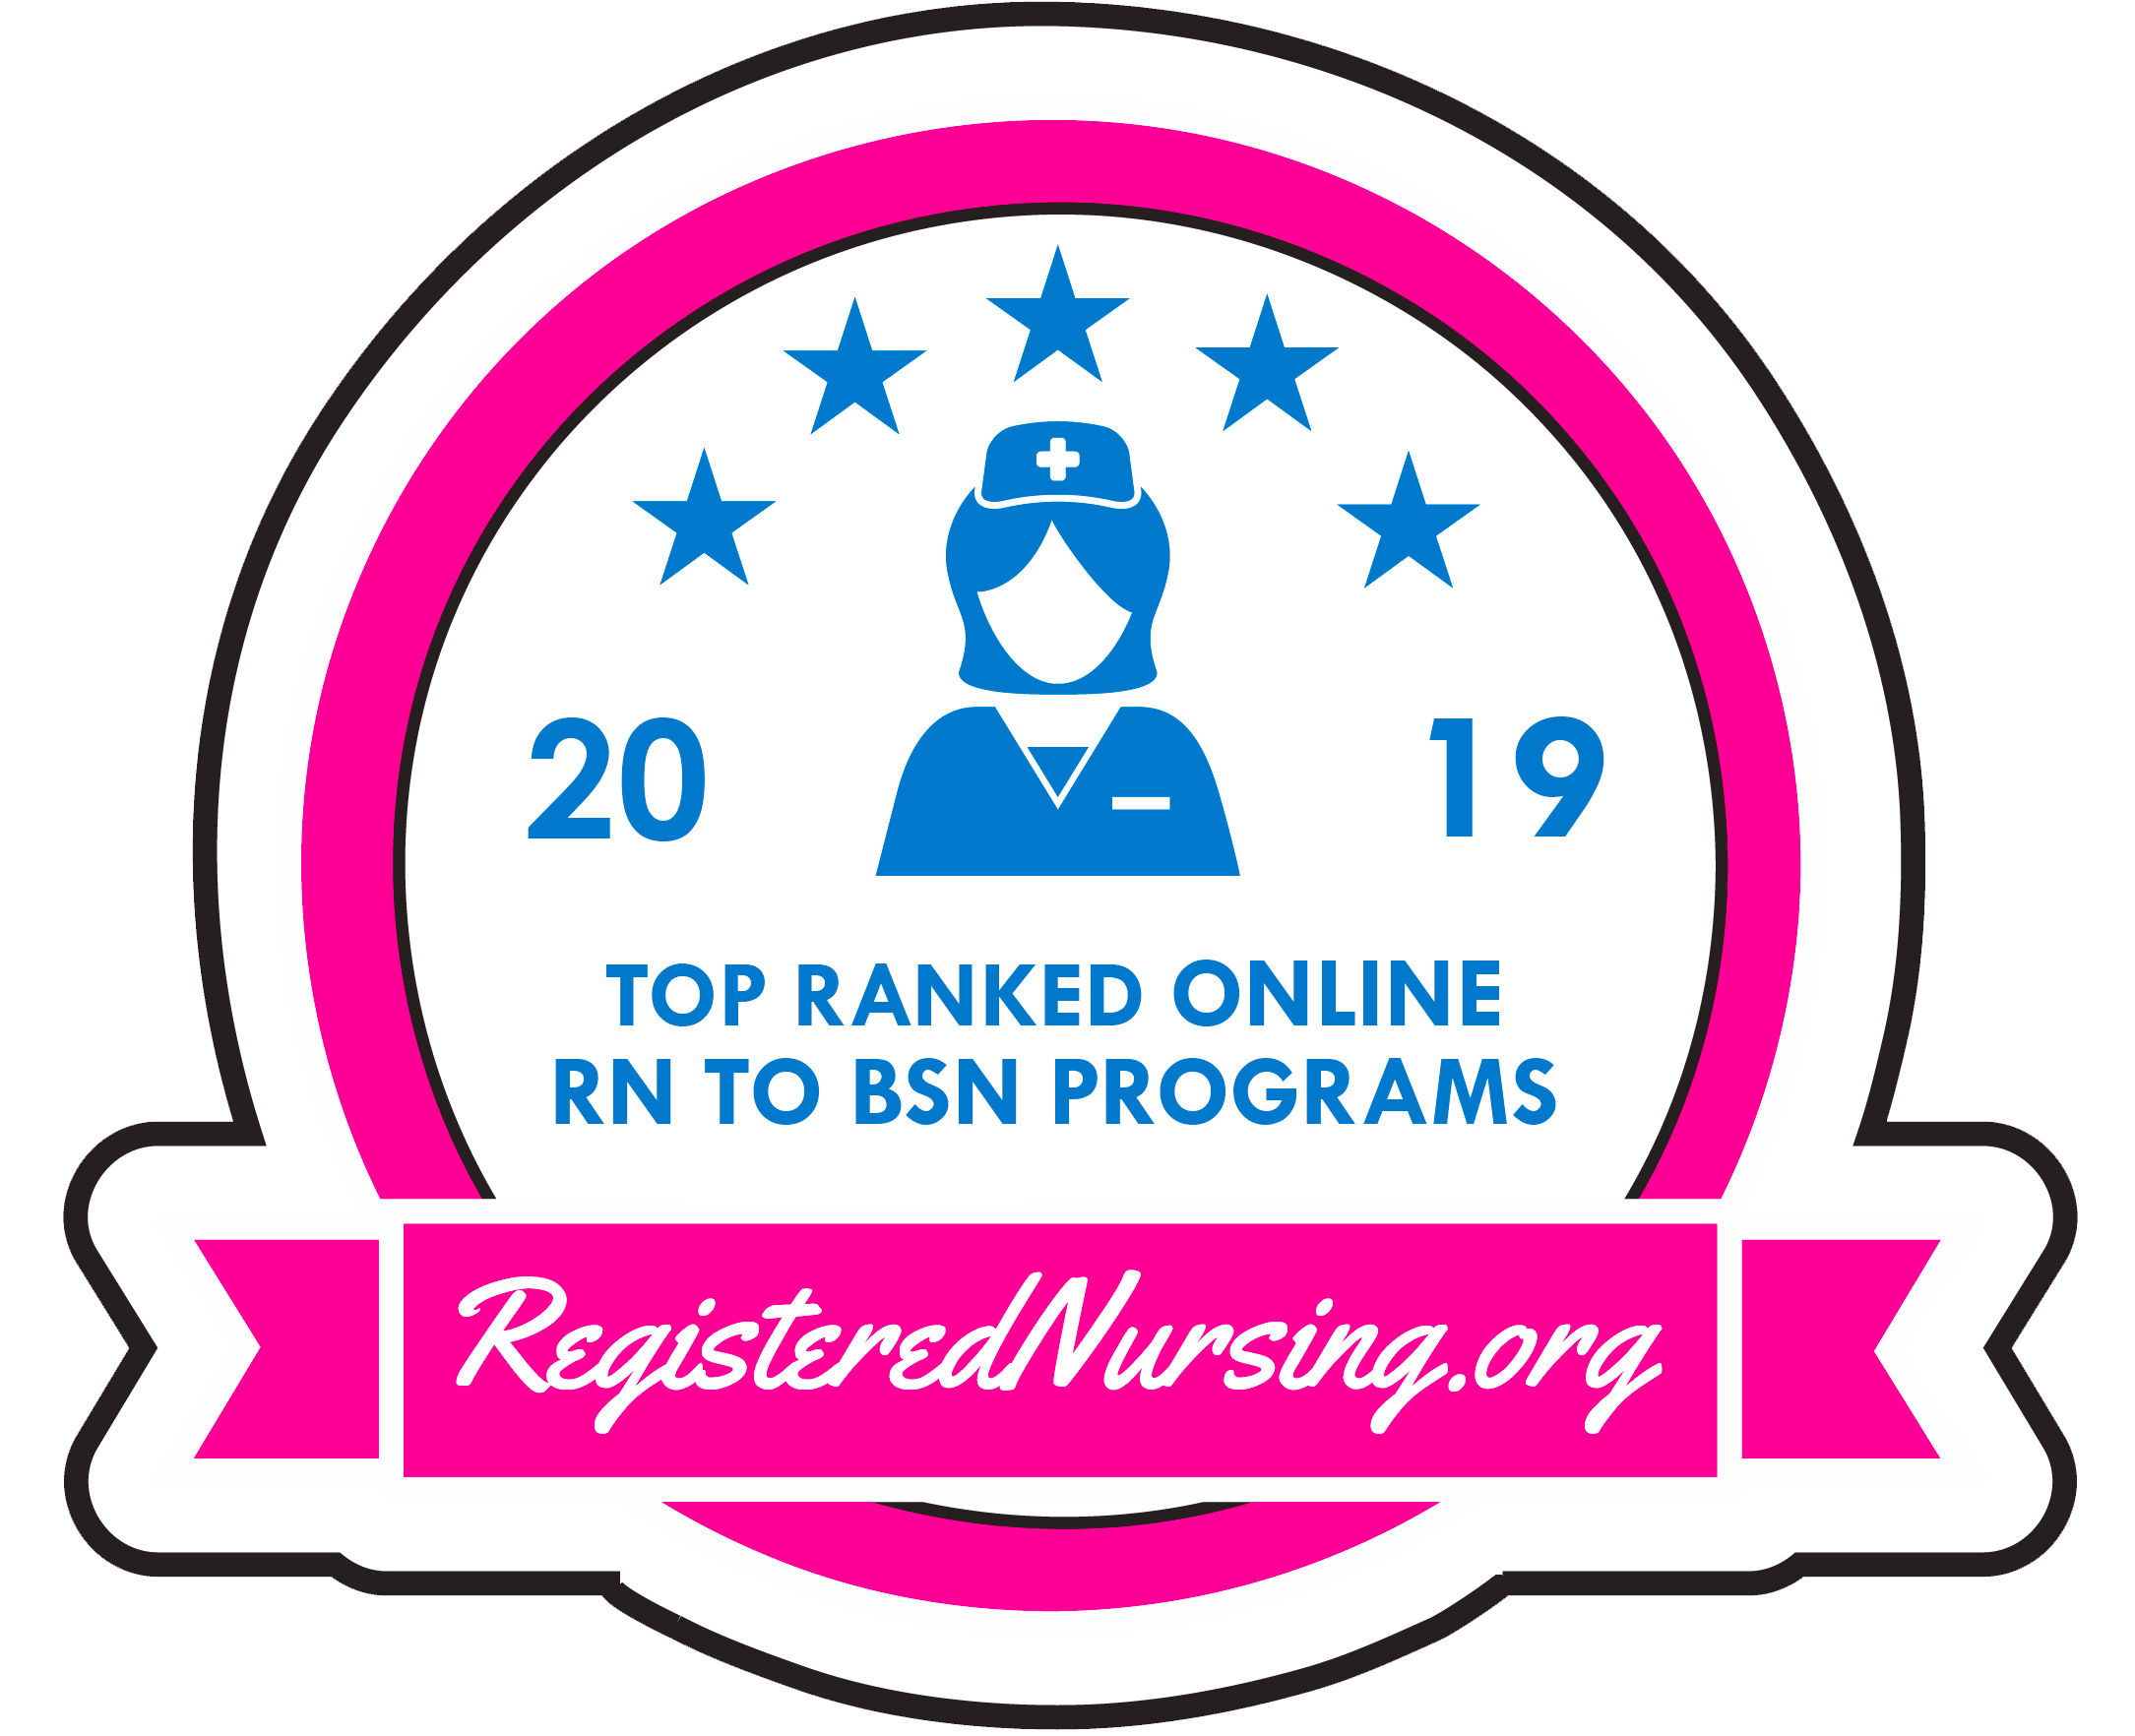 registered nursing.org badge